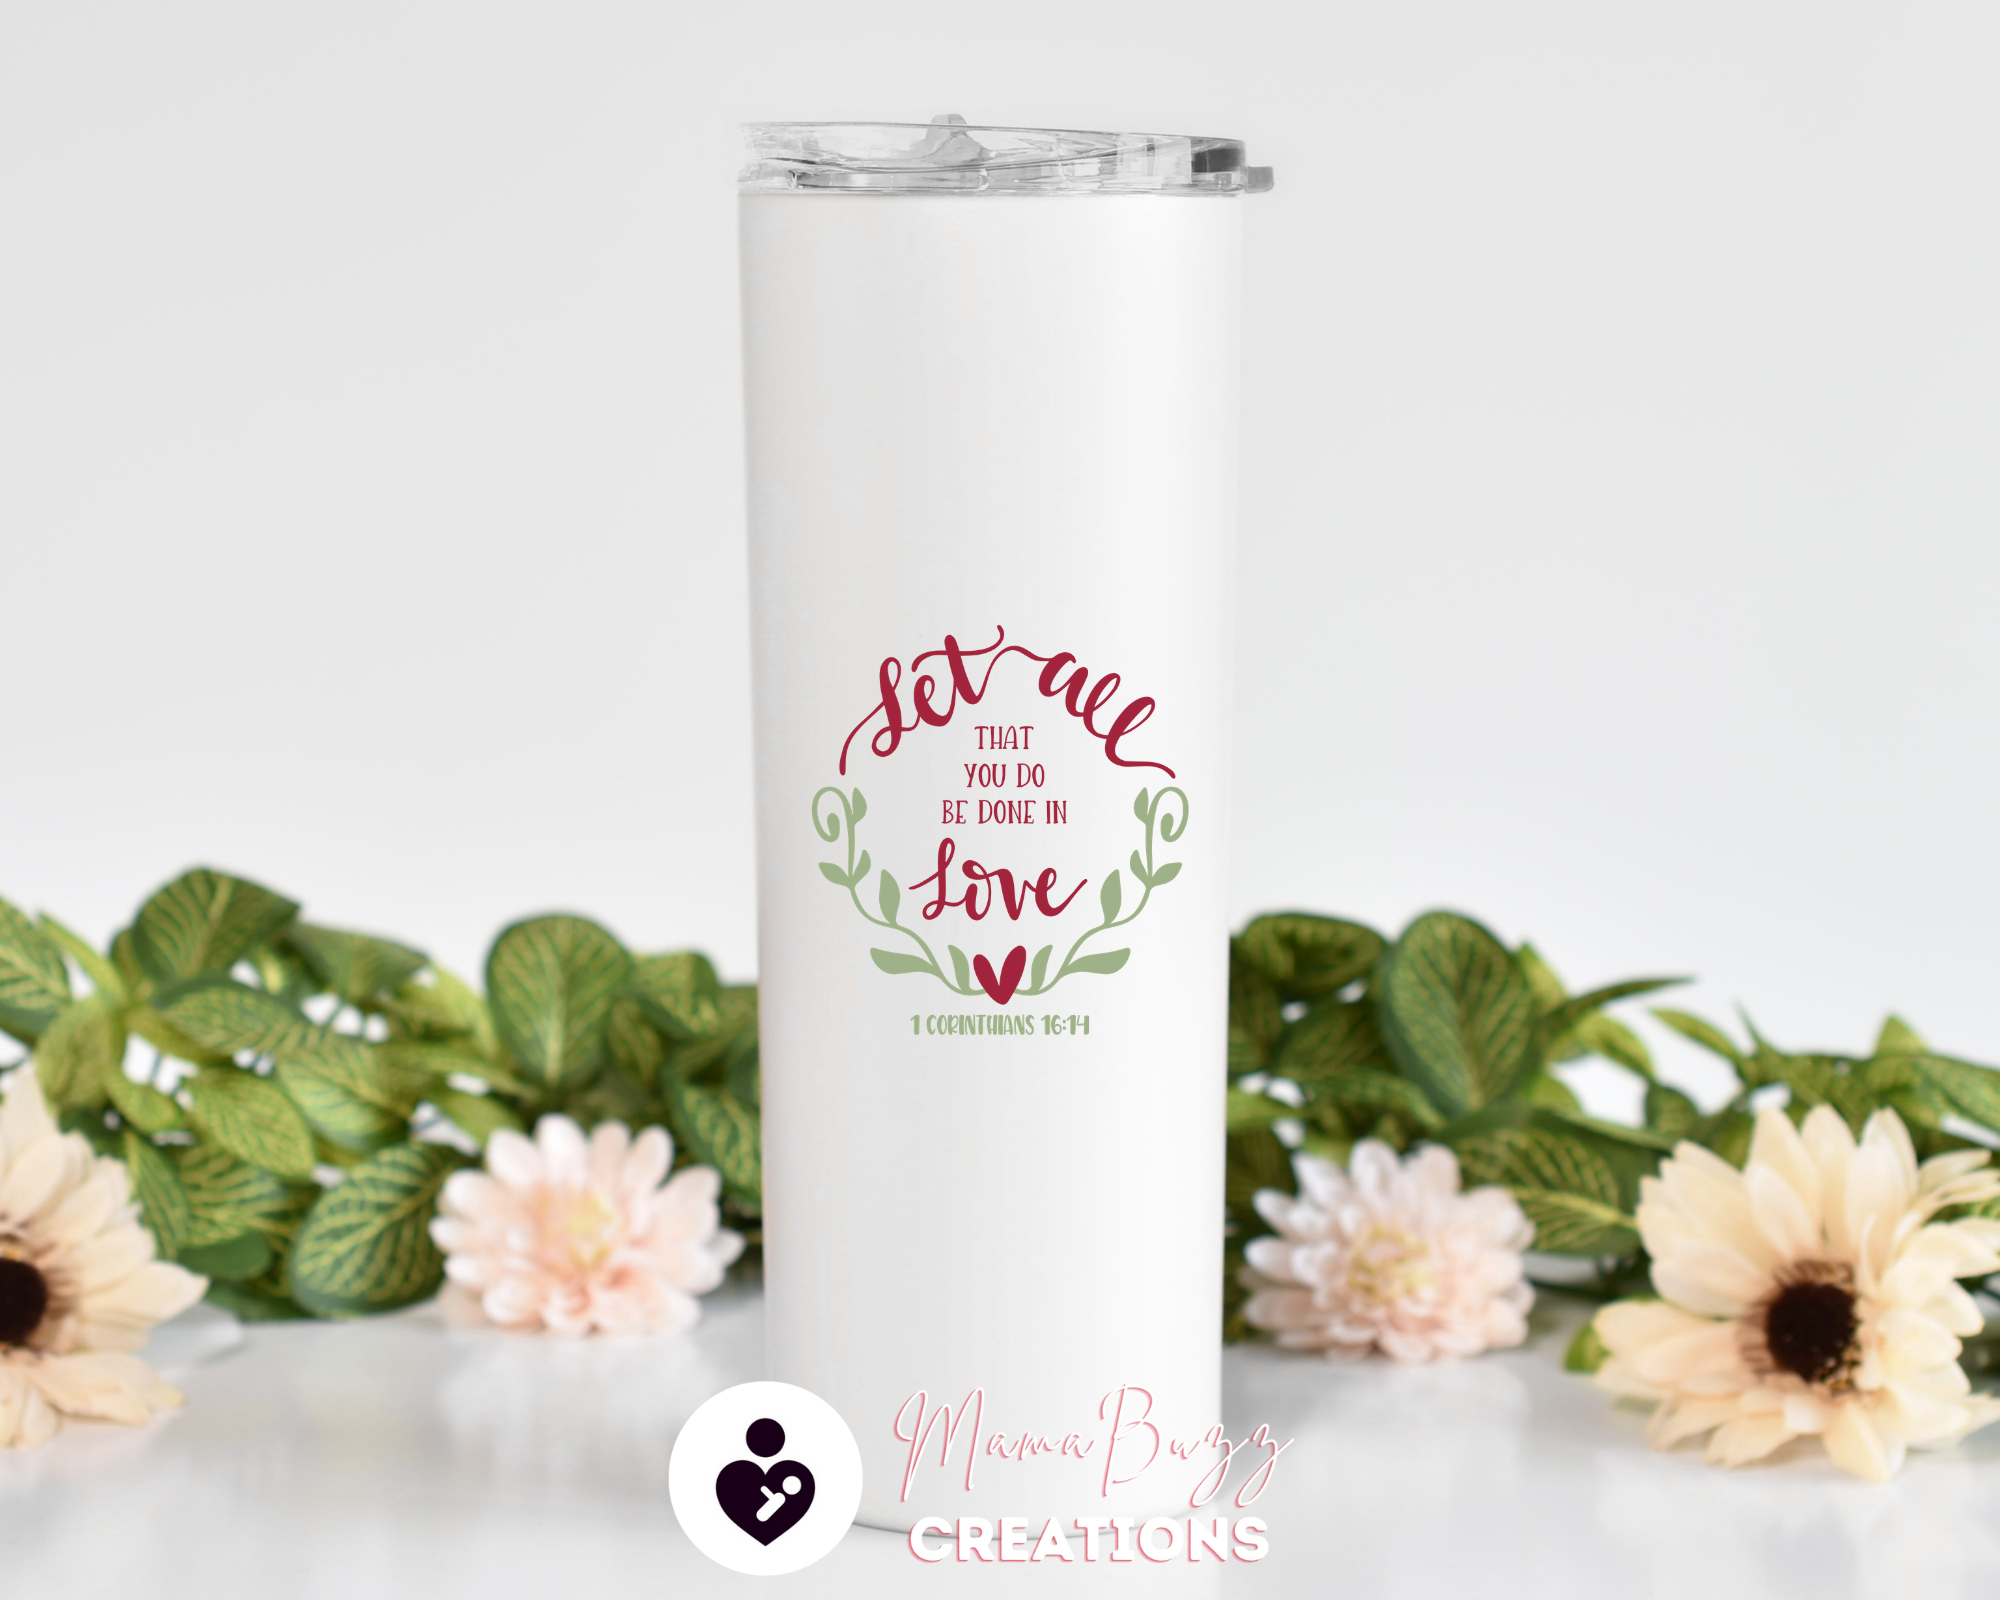 Faith,Hope,Love Custom Tumbler,Personalized Tumbler Cup,Insulated Tumbler,Custom Tumbler With Straw,Personalized 20 Oz Steel Tumbler - MamaBuzz Creations